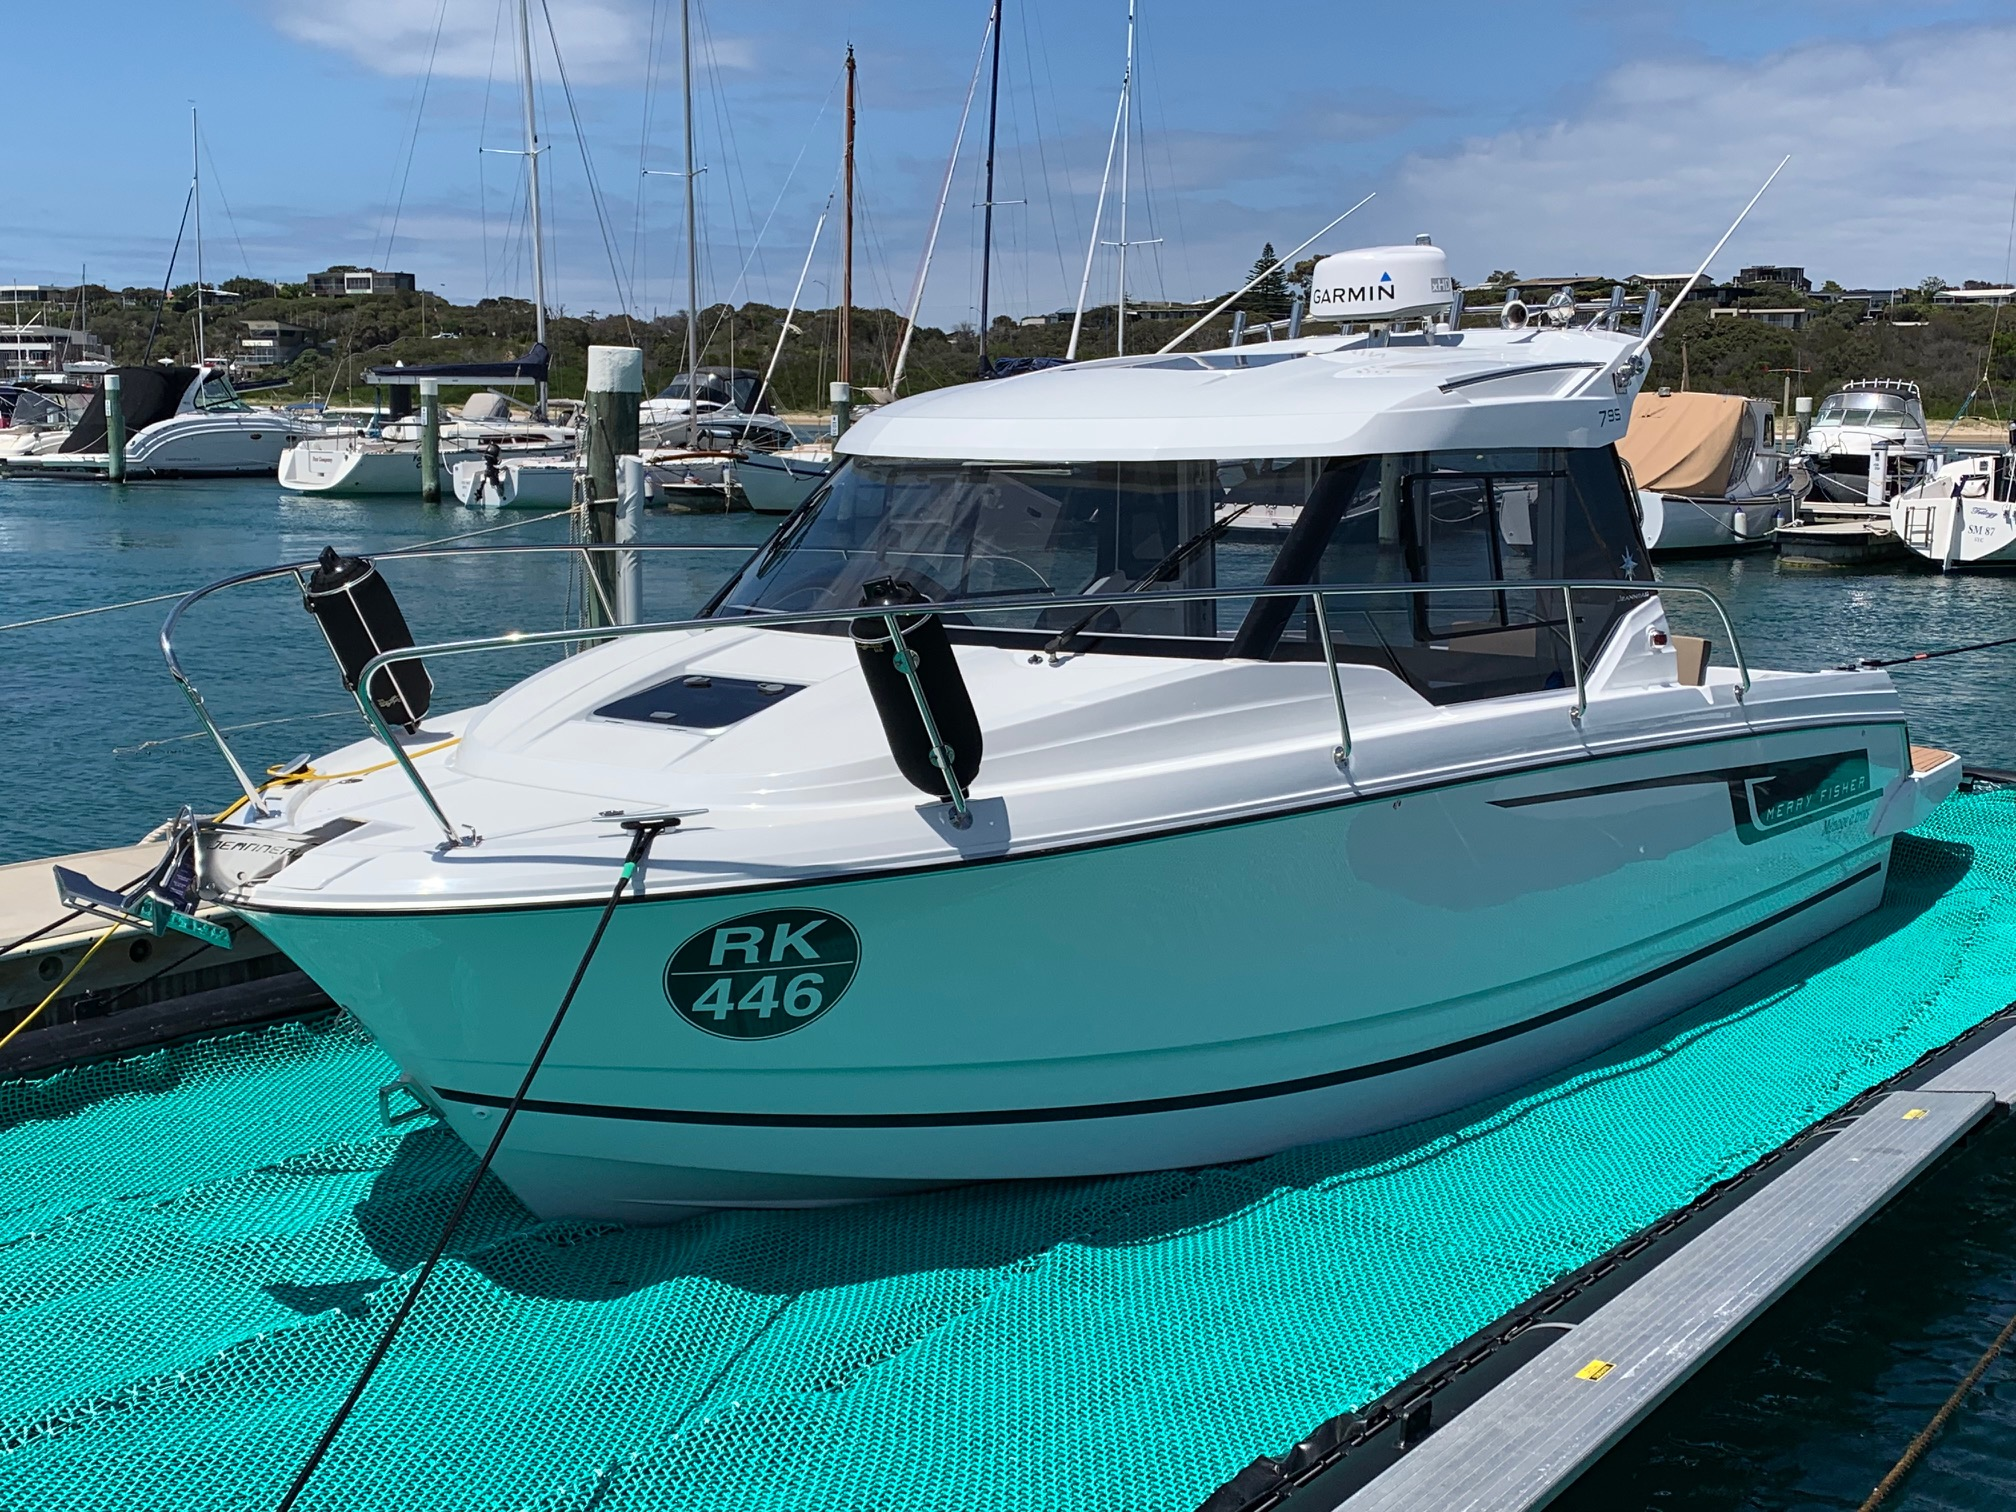 2016 Jeanneau Merry Fisher 795 38 South Boat Sales